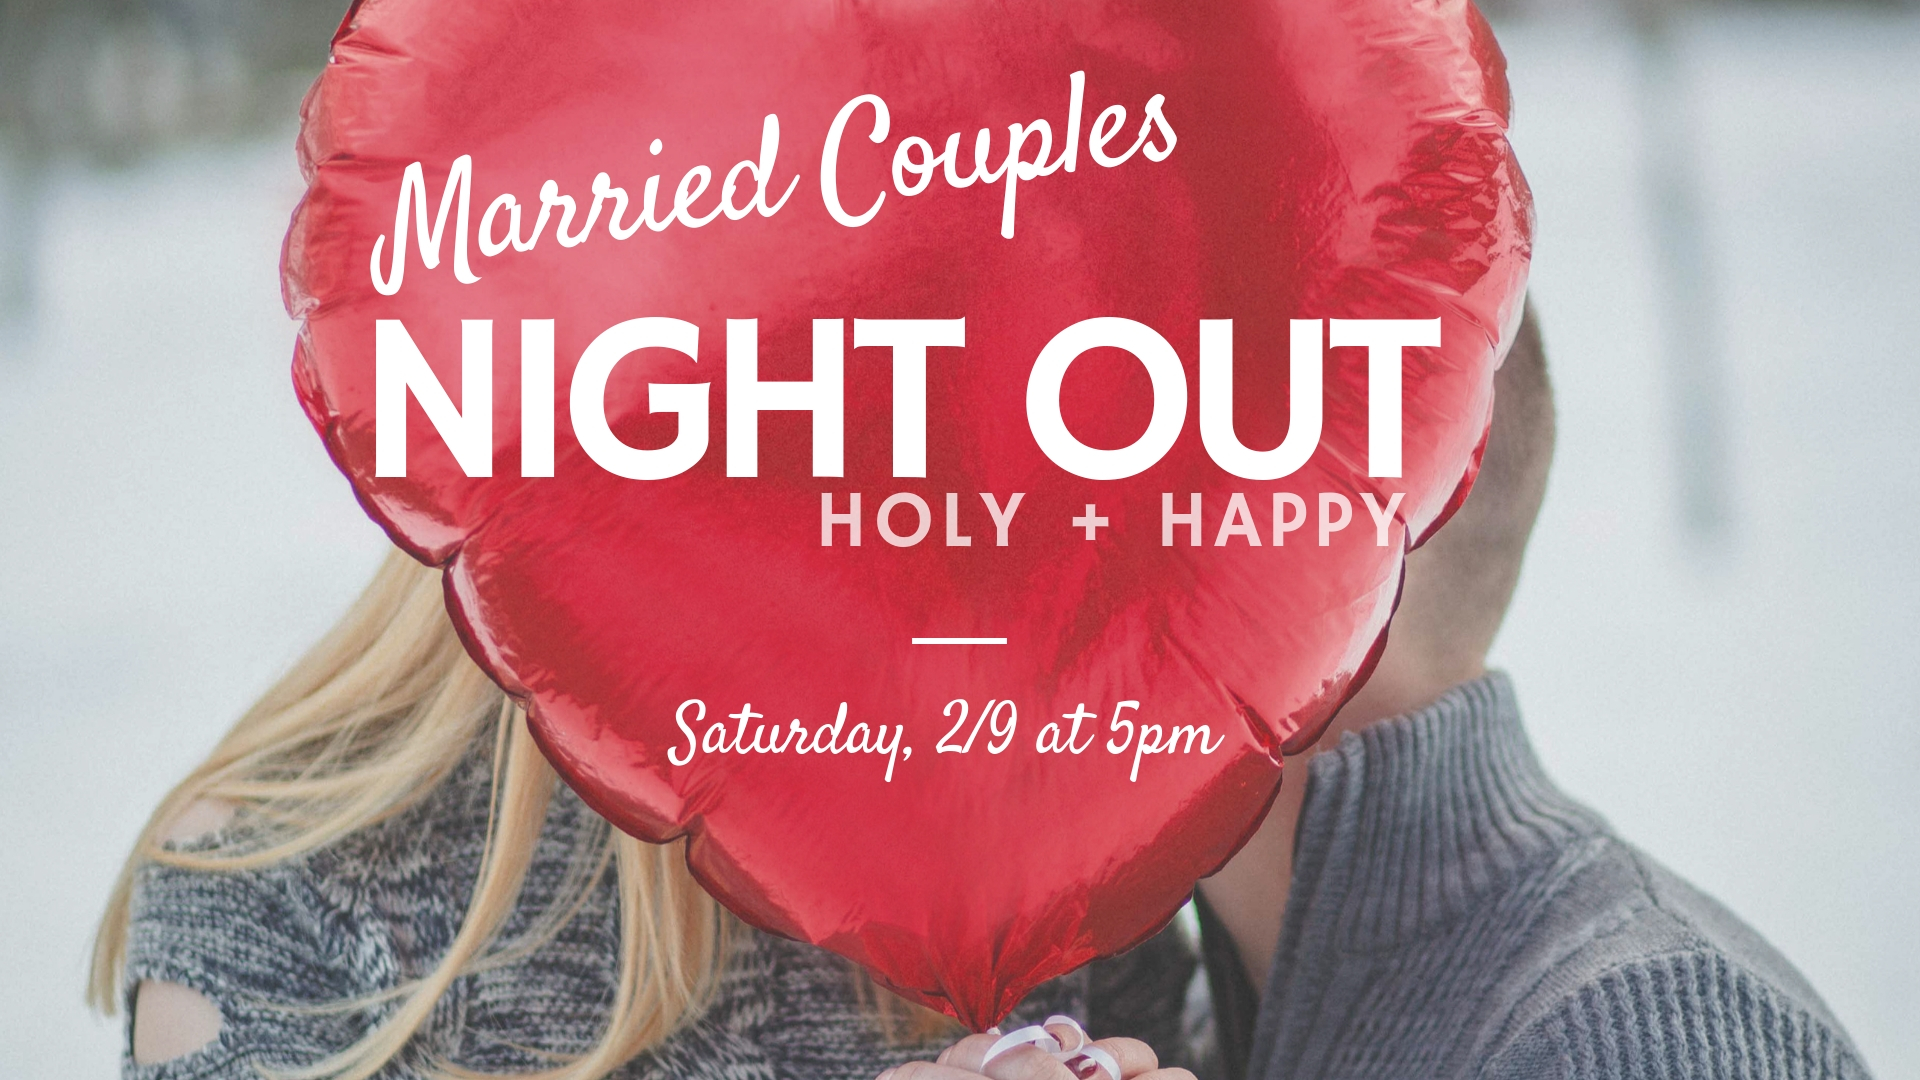 THE BEST THING YOU CAN DO FOR YOUR KIDS IS INVEST IN YOUR MARRIAGE - Who's ready for some fun! On Saturday, Feb 9 we are having our Married Couples Night Out event. It's a one-night event that is going to be a lot of fun, even fun enough to invite your friends and neighbors to. No. Seriously. And guys we promise we are not going to beat you up, promise.Our goal is simply this—to help you and your spouse connect. It's going to be a great night for married couples!You may be wondering who is this for? Is it for newly marrieds, couples with kids, couples without kids, empty nesters, couples in crisis? This event is for every married couple, that's who it's for. Can't wait to see you there.